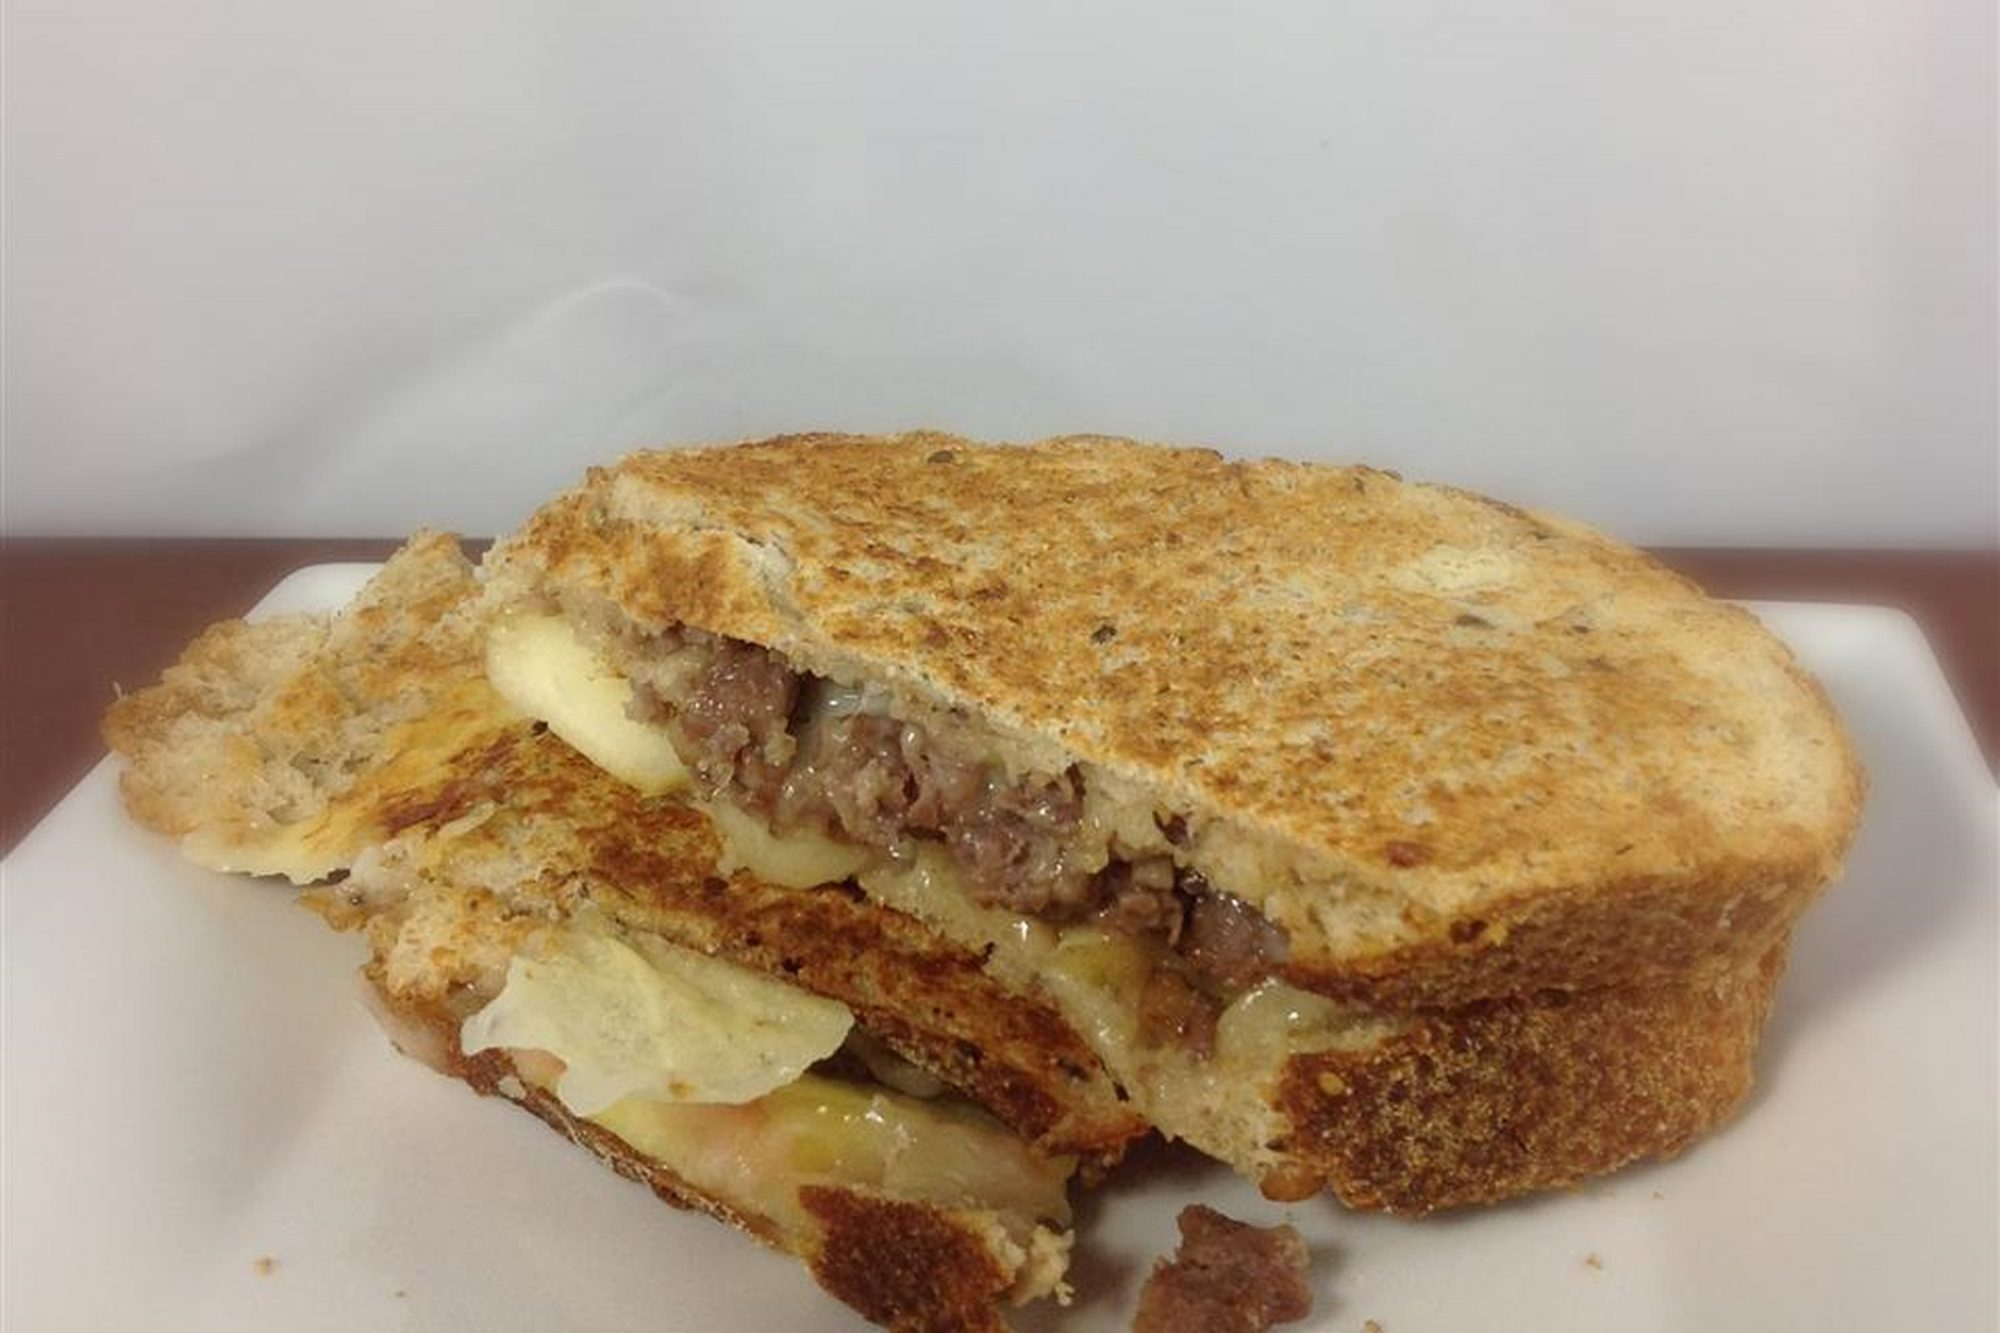 Apple and Bacon Grilled Cheese